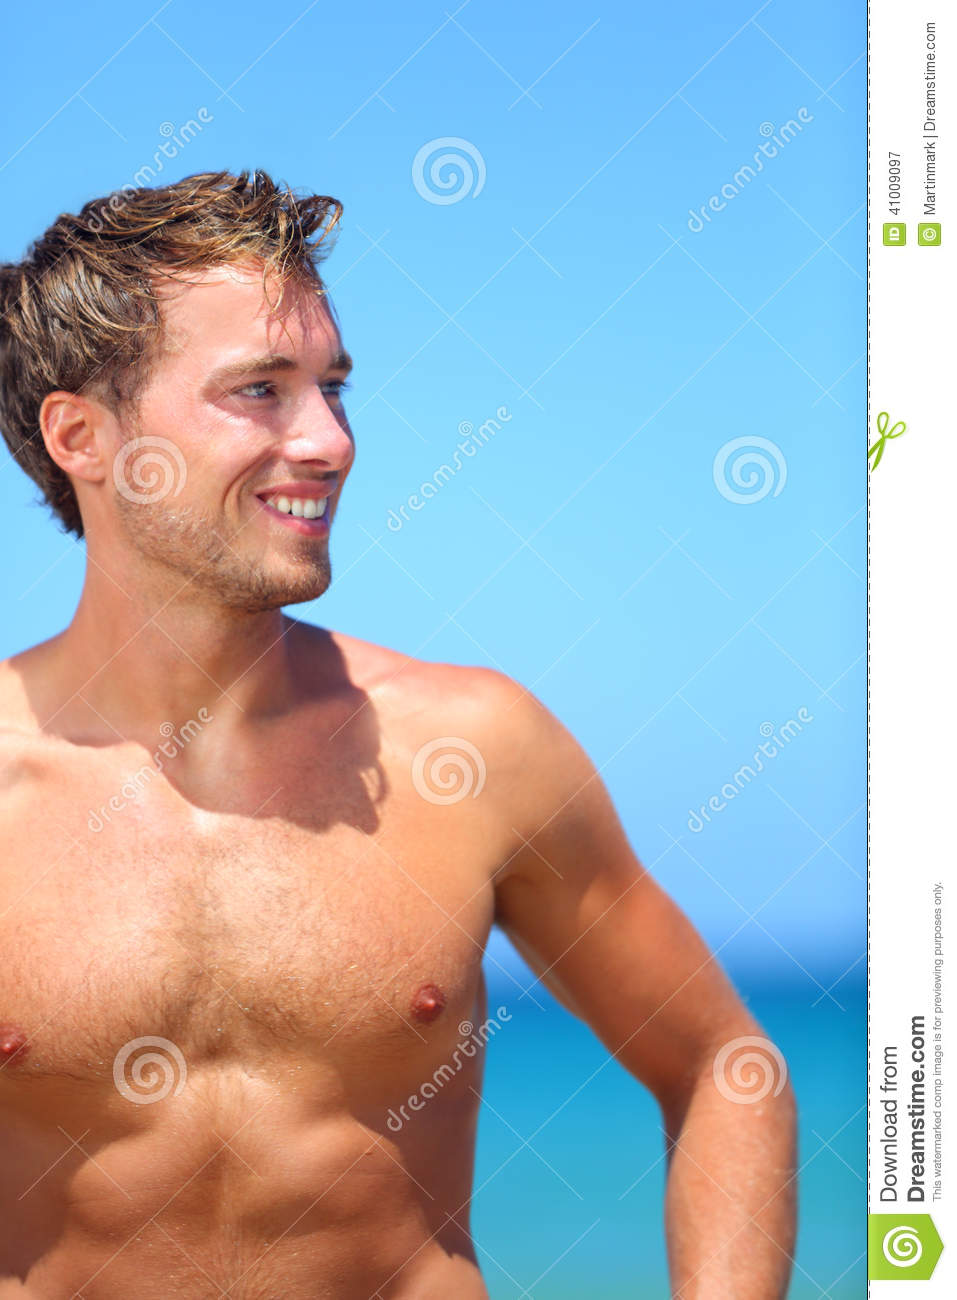 Handsome Good-Looking Man On Beach Smiling Happy Stock Photo - Image 41009097-6442